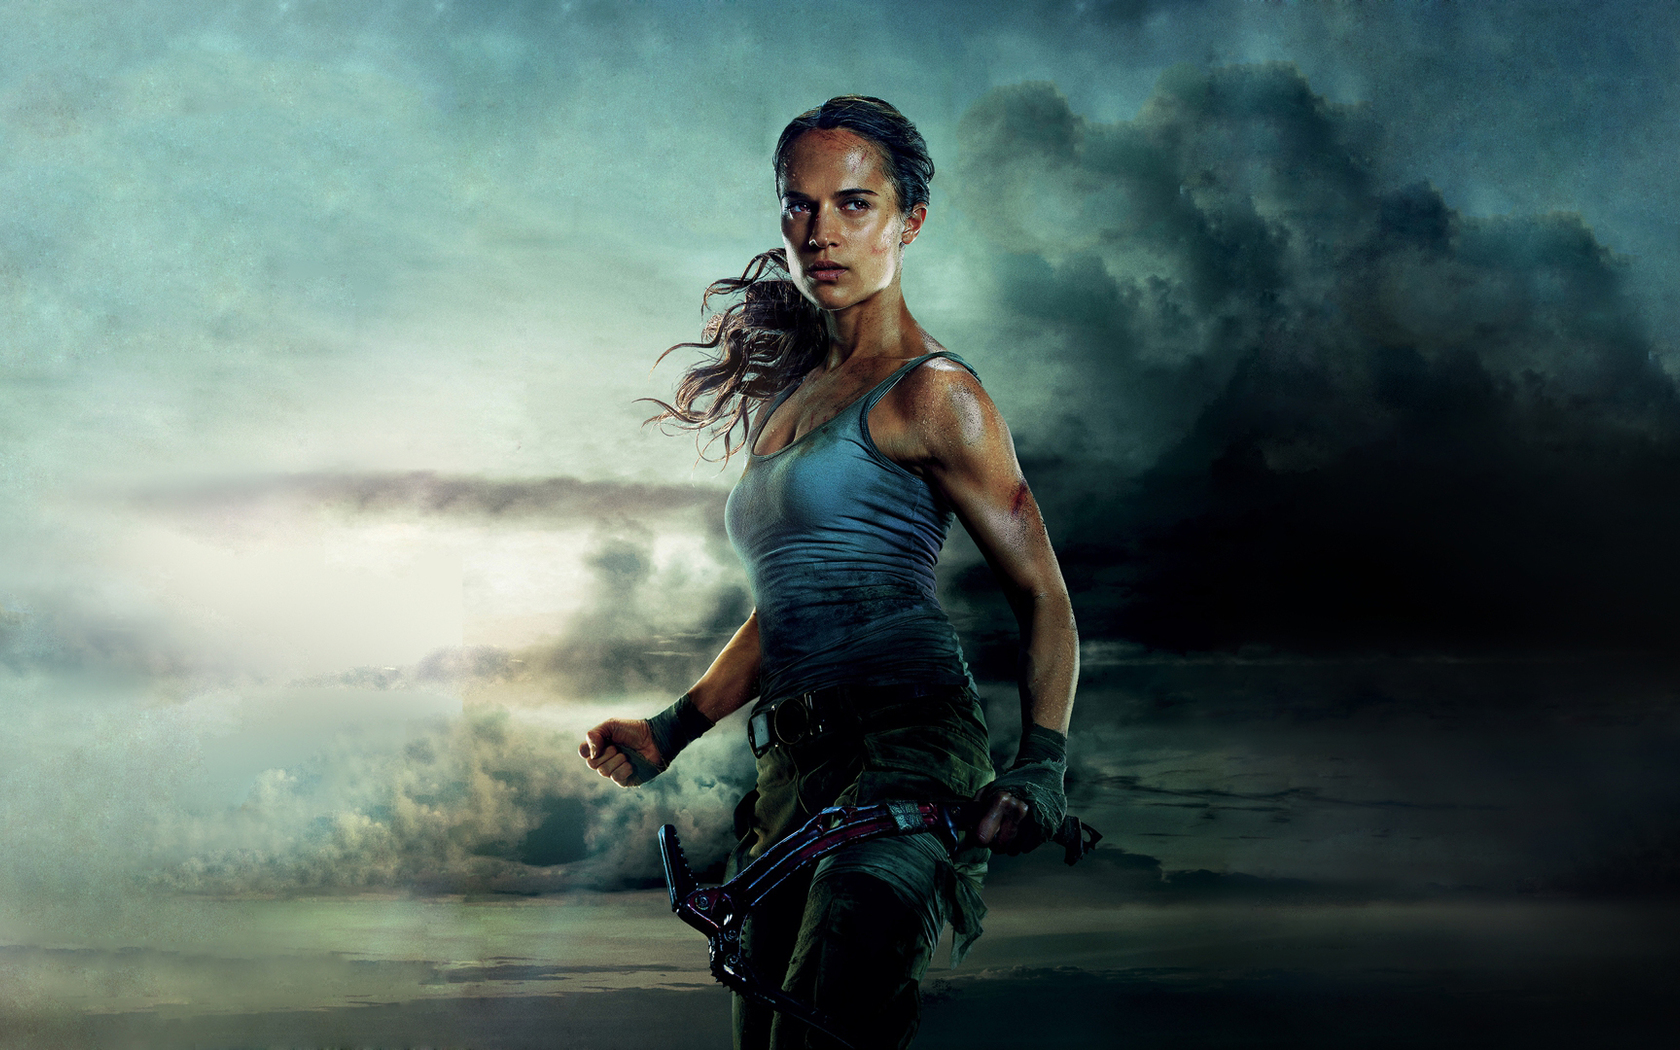 tomb-raider-2018-movie-alicia-vikander-5s.jpg